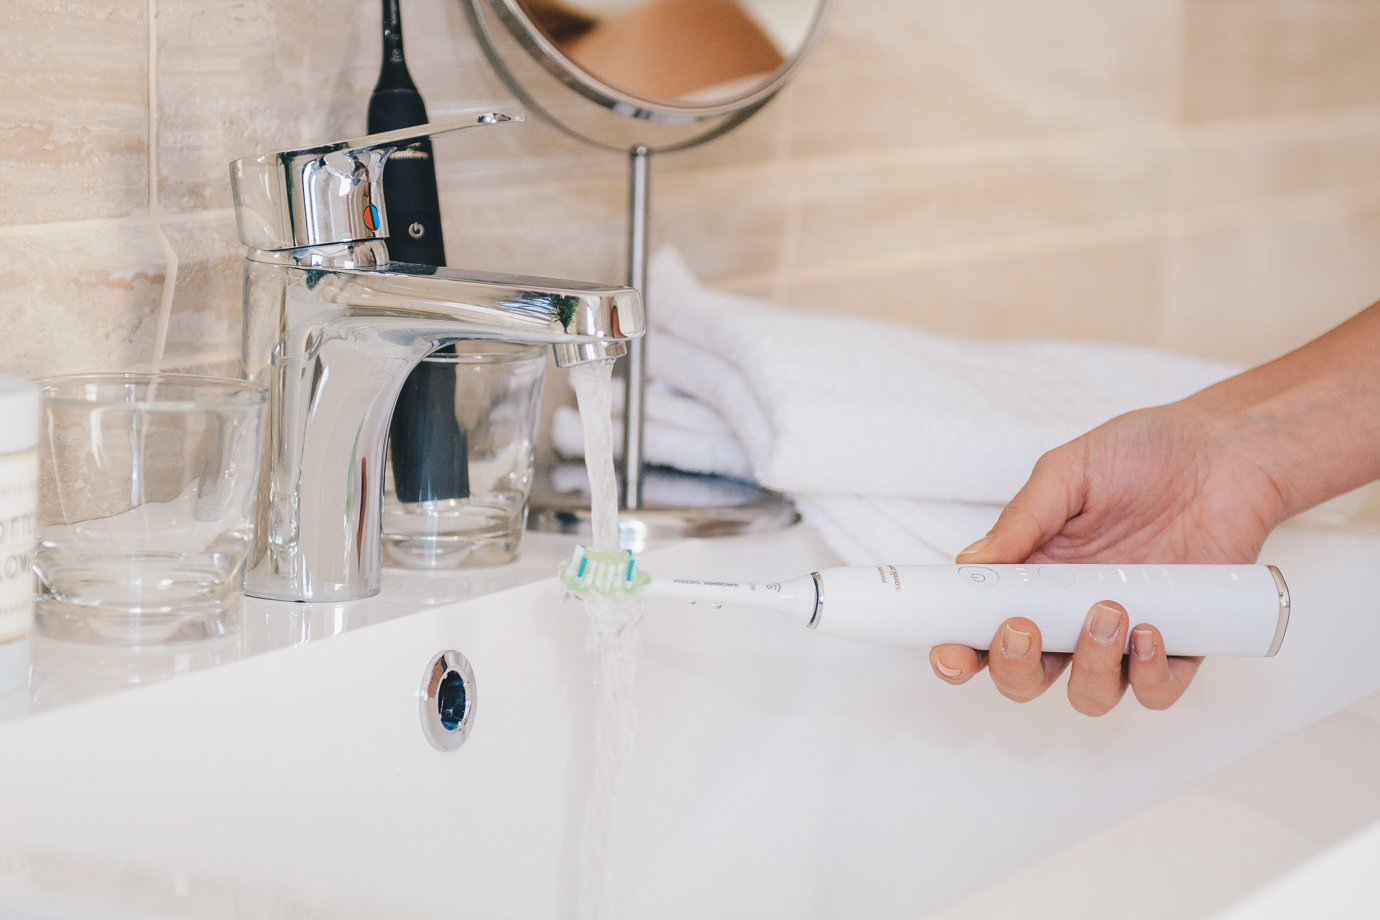 Cleaning sonicare diamondclean toothbrush